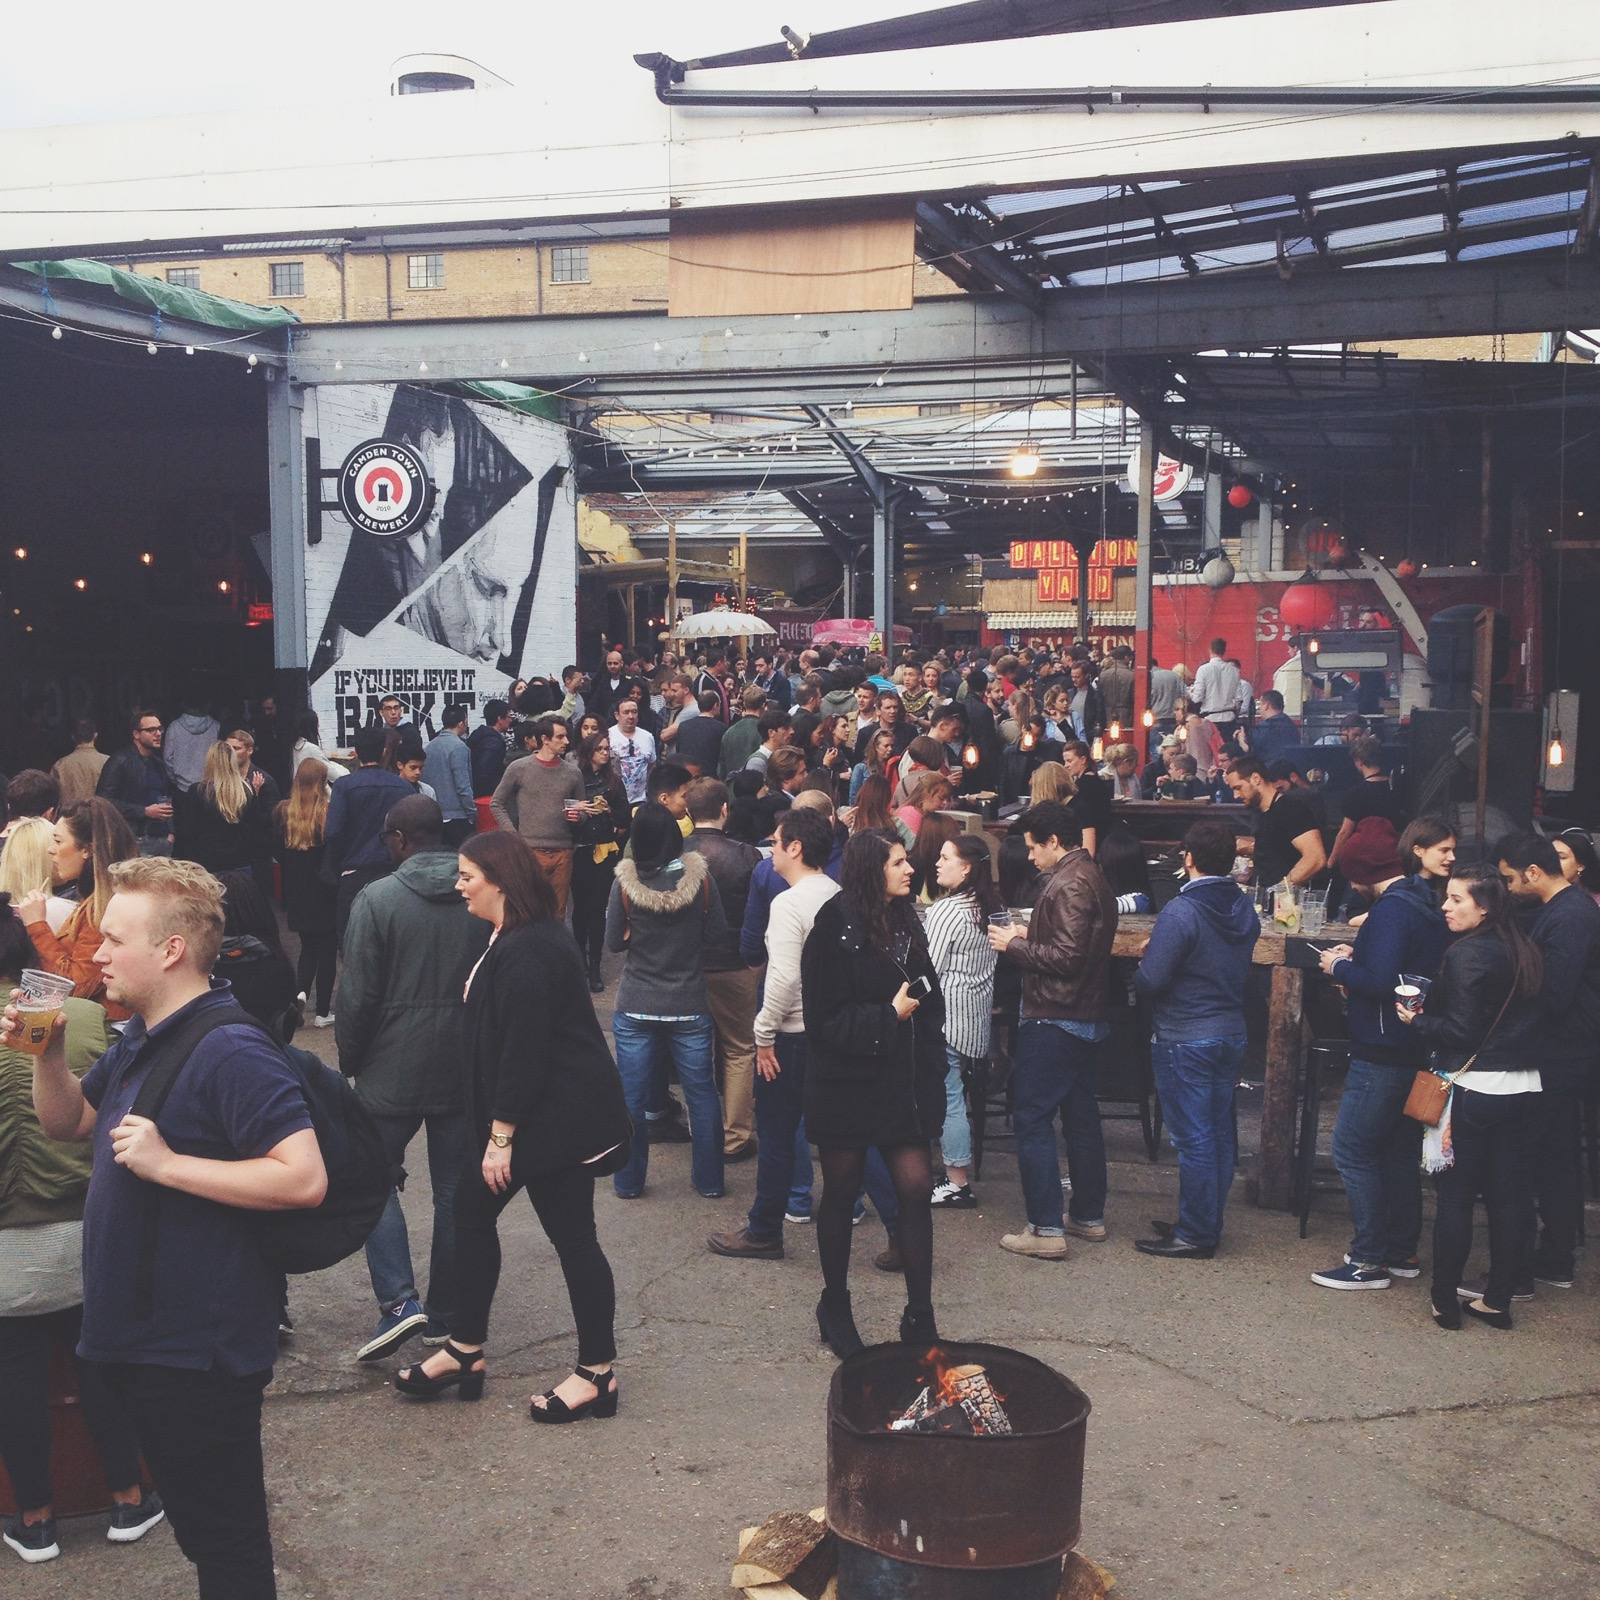 Everyone enjoying the food and drinks Street Feast had in store